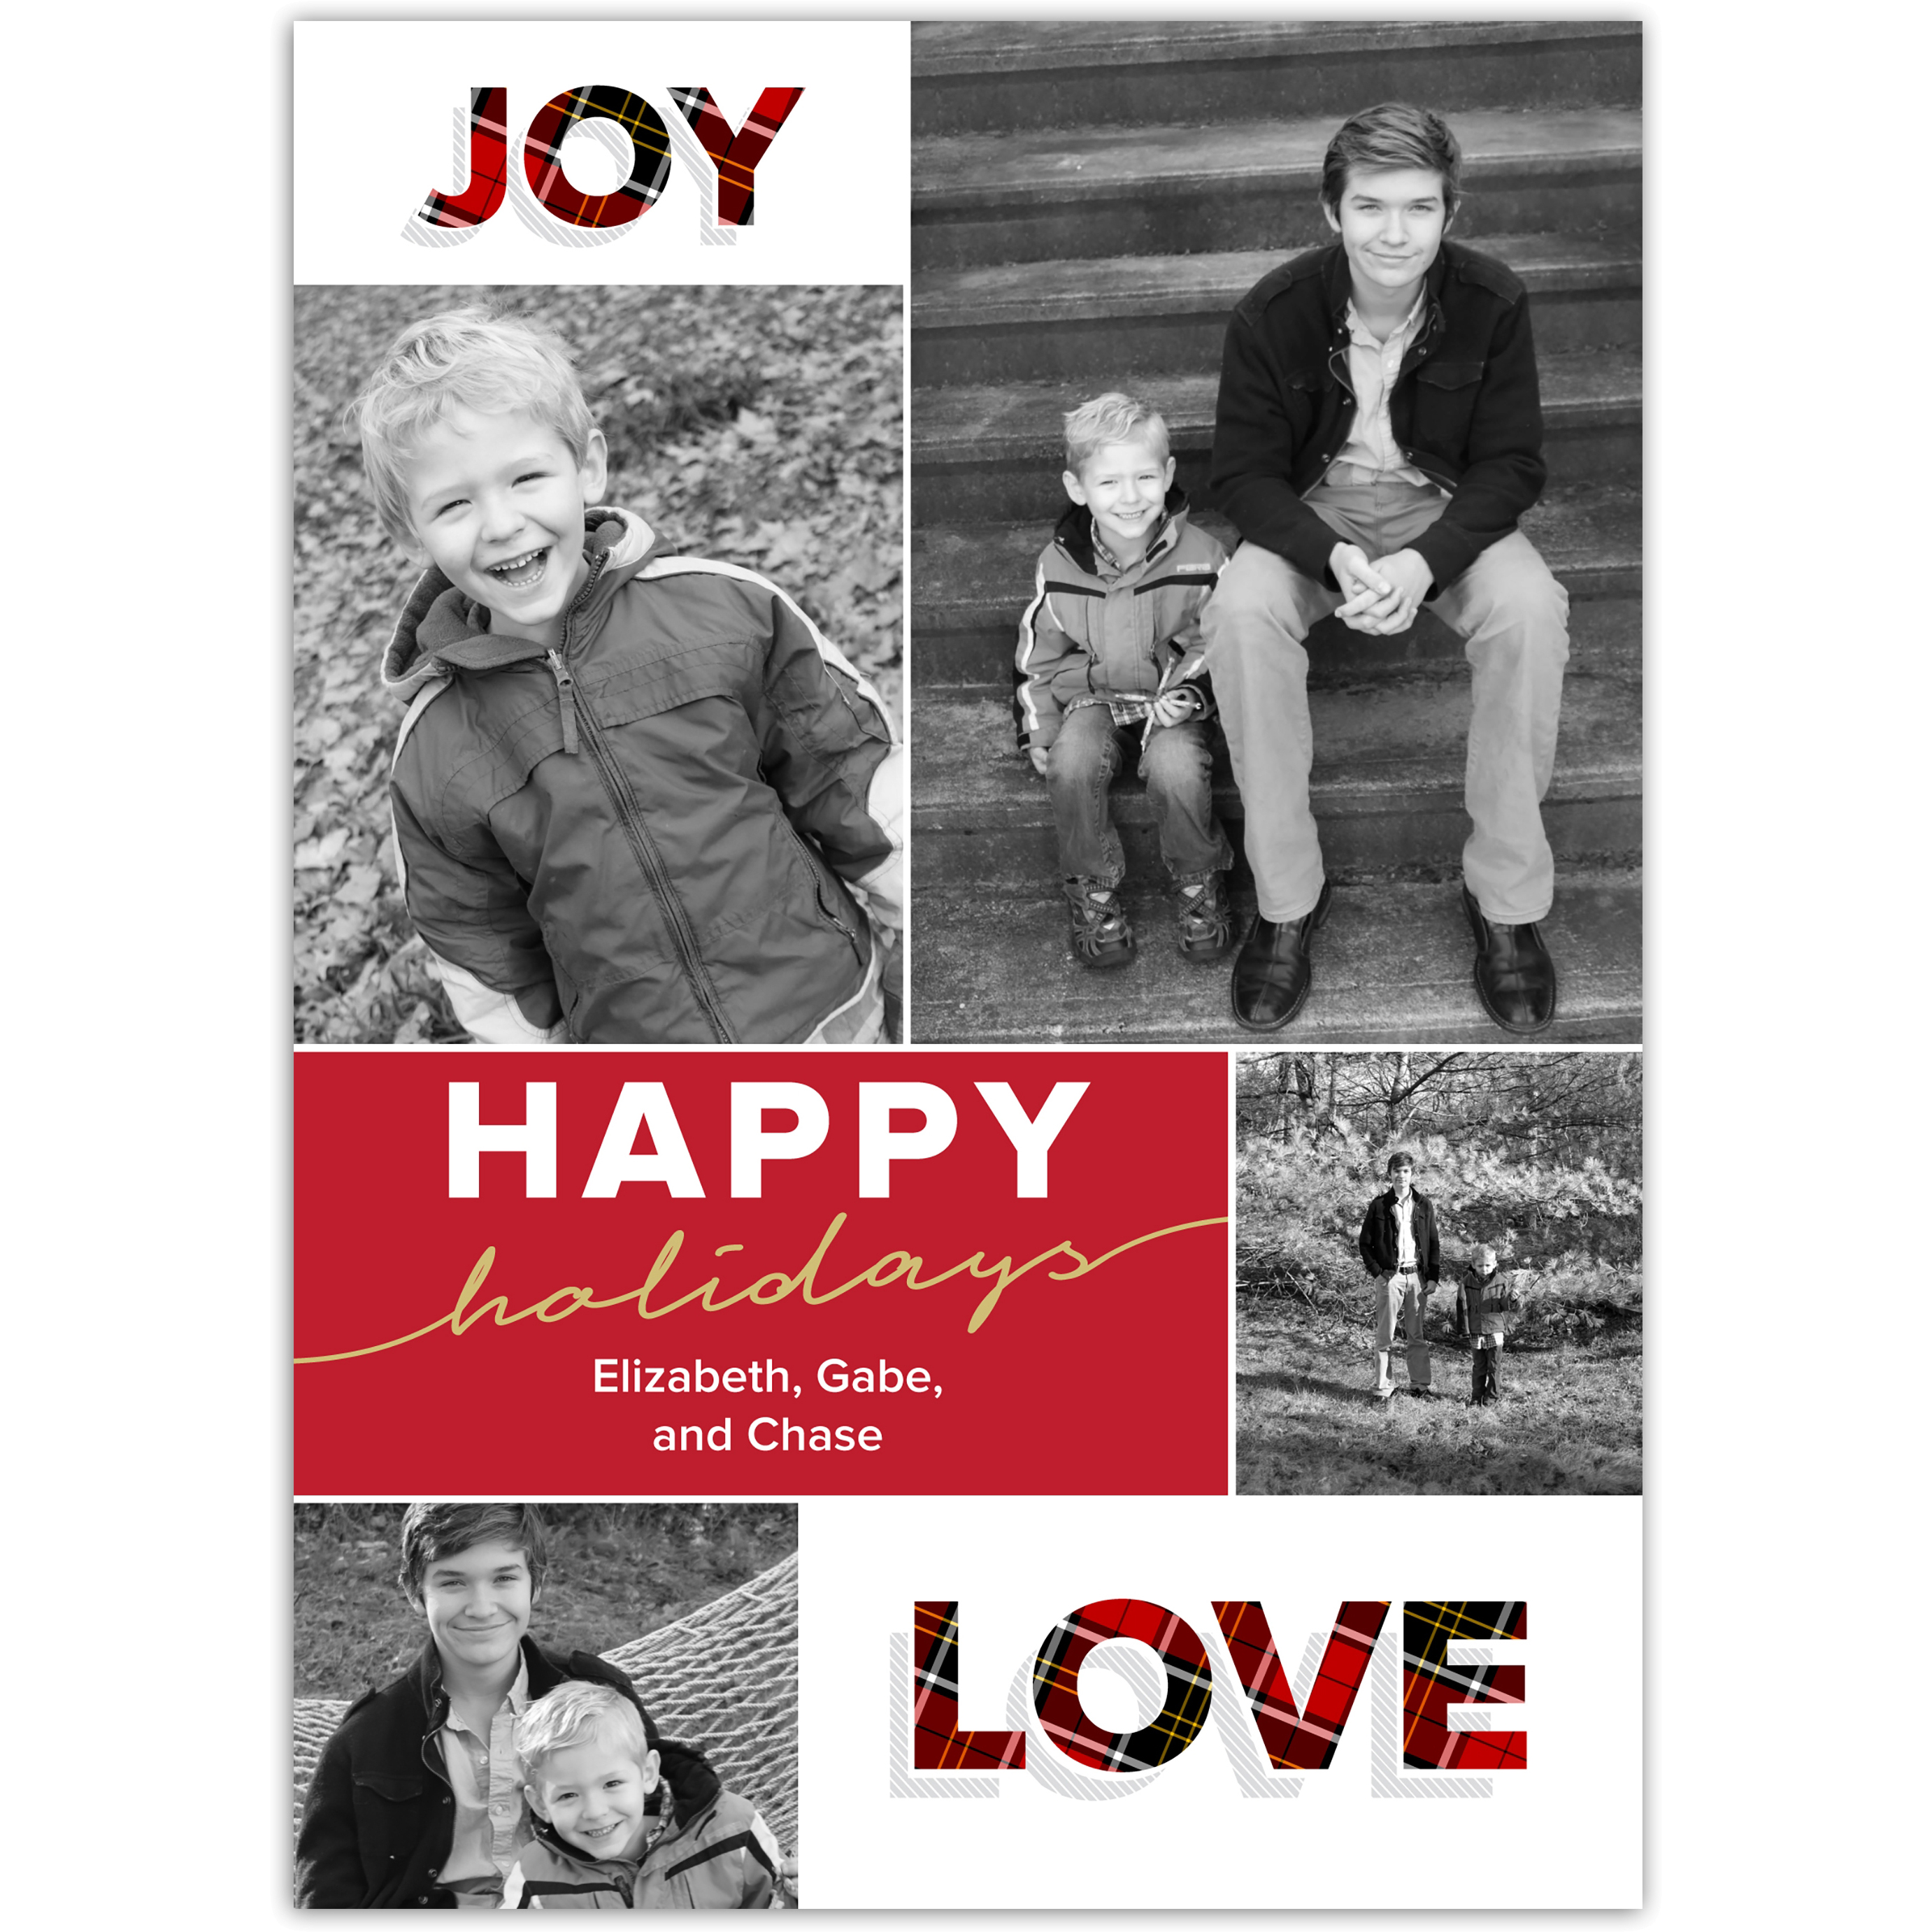 Joy Love Peace - 5x7 Personalized Holiday Card